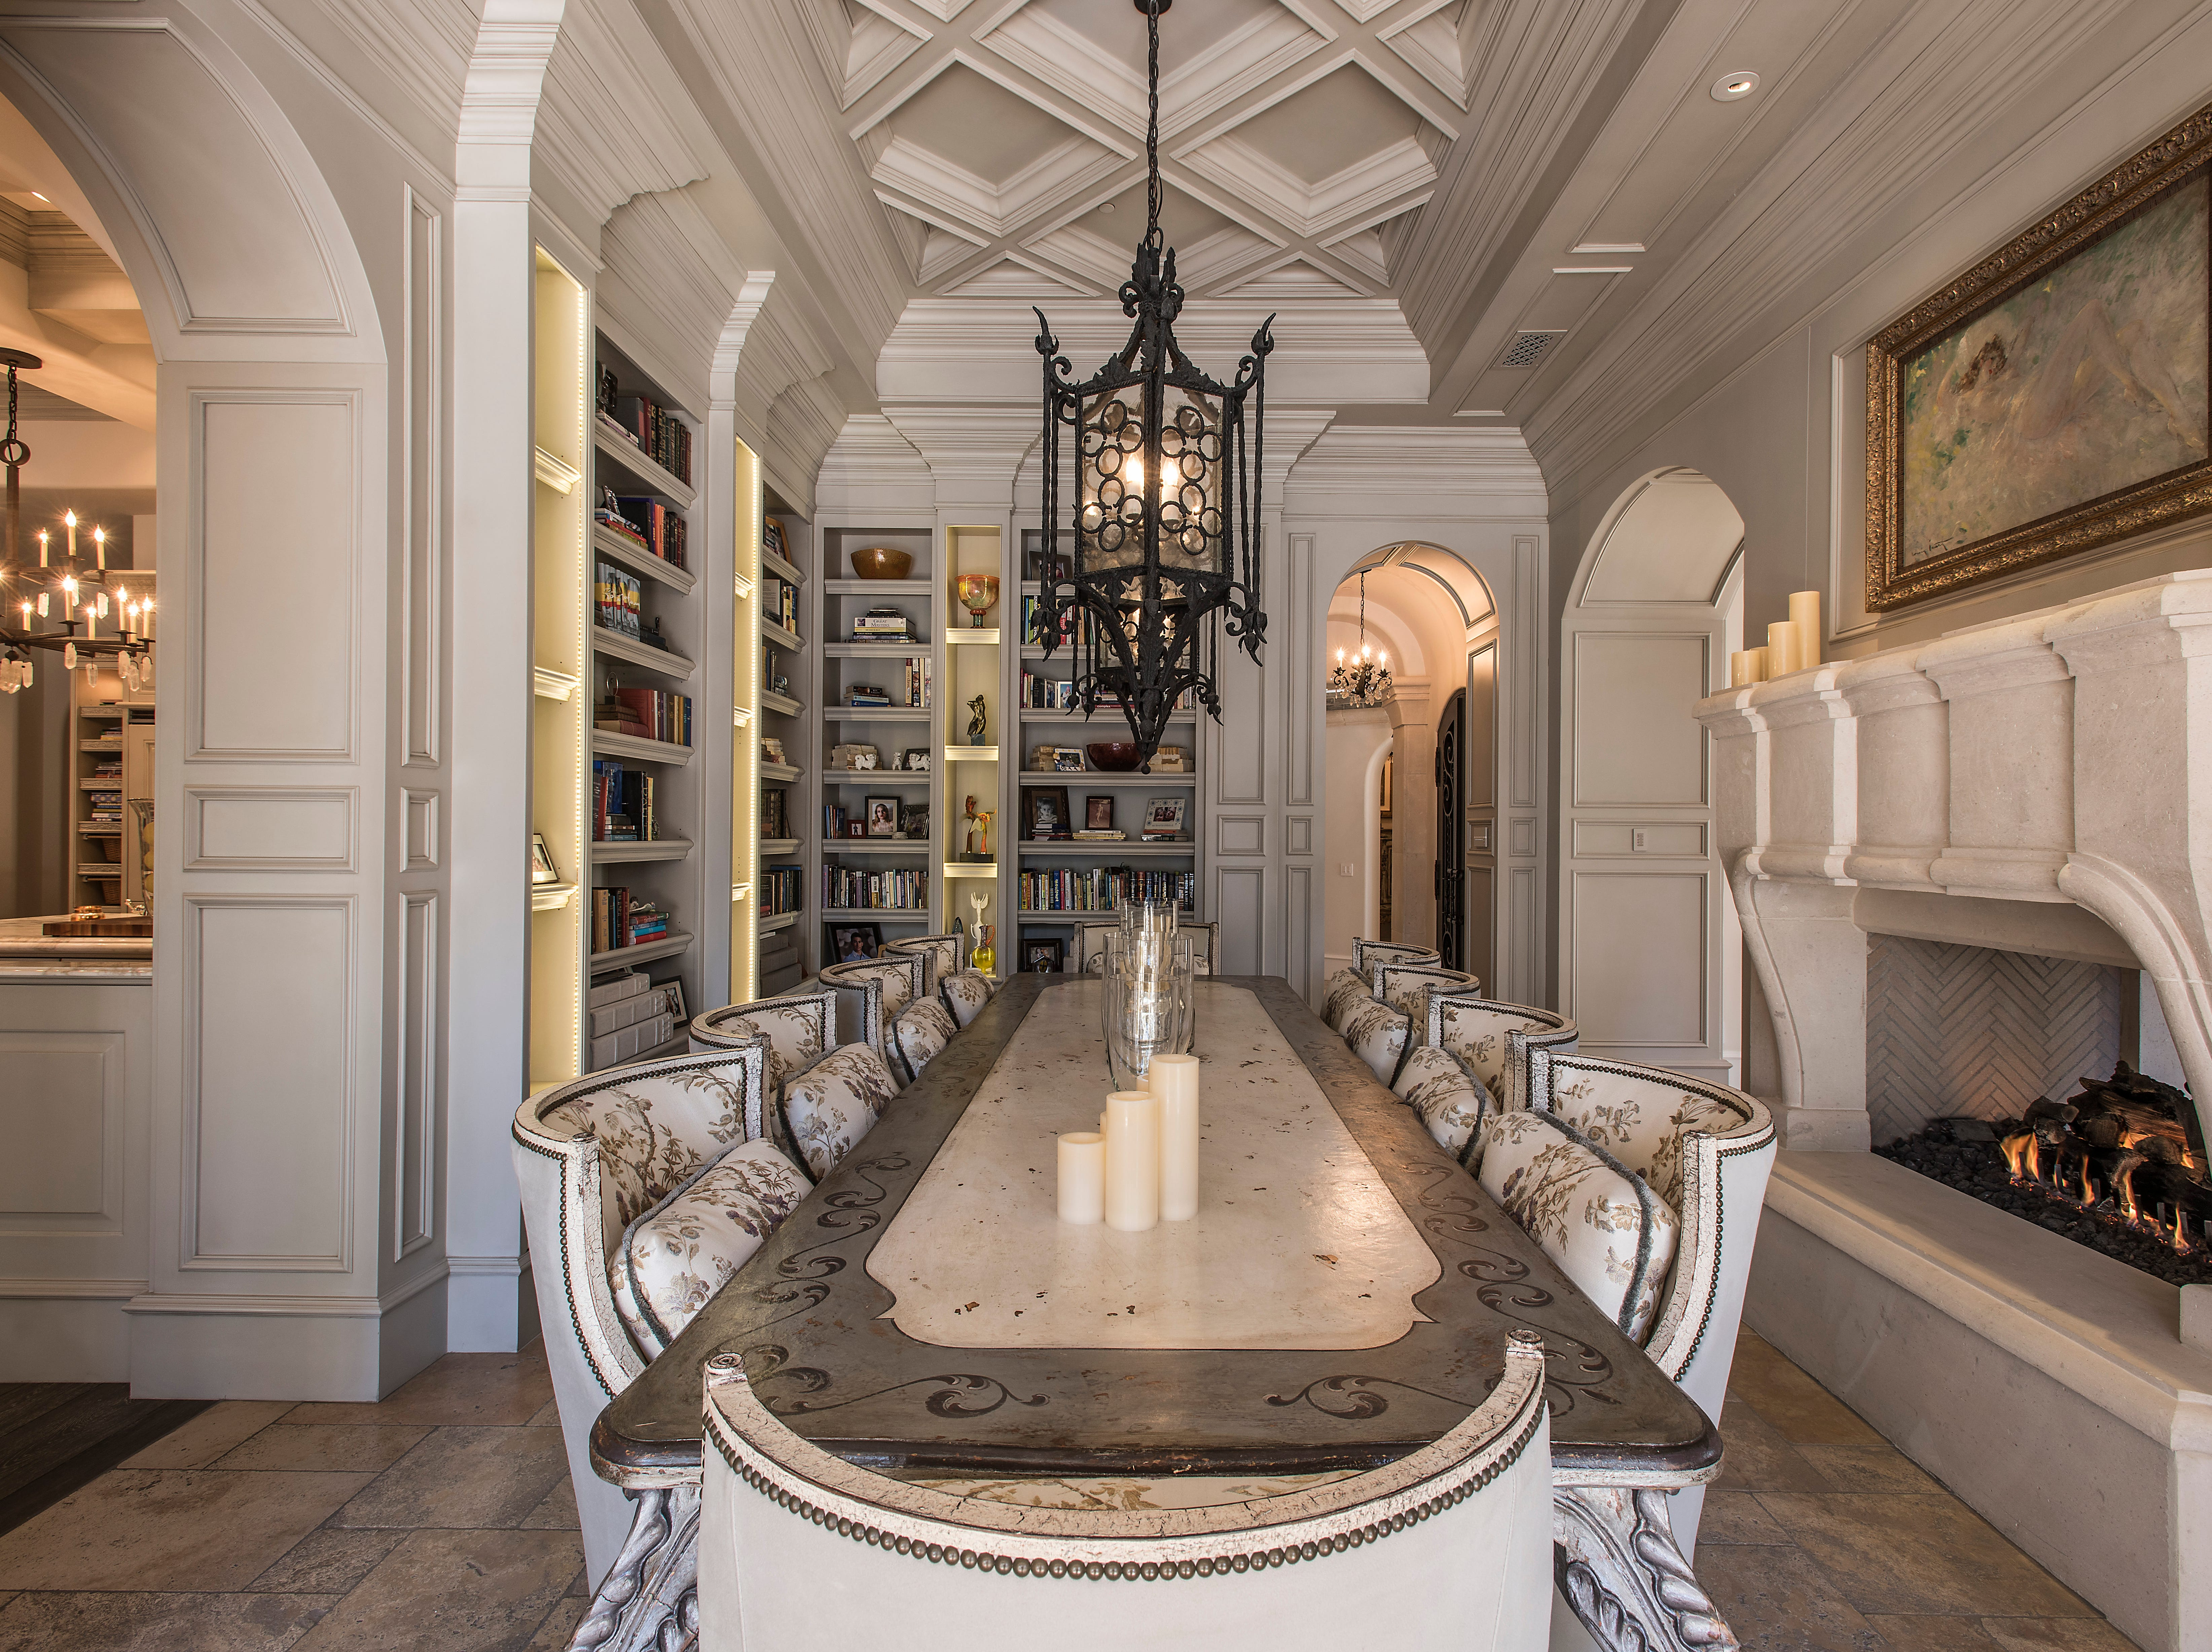 """The 10,000-square-foot home attorney Glen Lerner has listed for sale for $6.99 million comes with a billiards room, workout studio, wine cellar and home theater.The """"resort-style"""" mansion, built in 2009, also has five bedrooms, seven bathrooms, a guest casita and a four-car garage. Look for """"multiple fire features"""" outside near the pool and spa."""